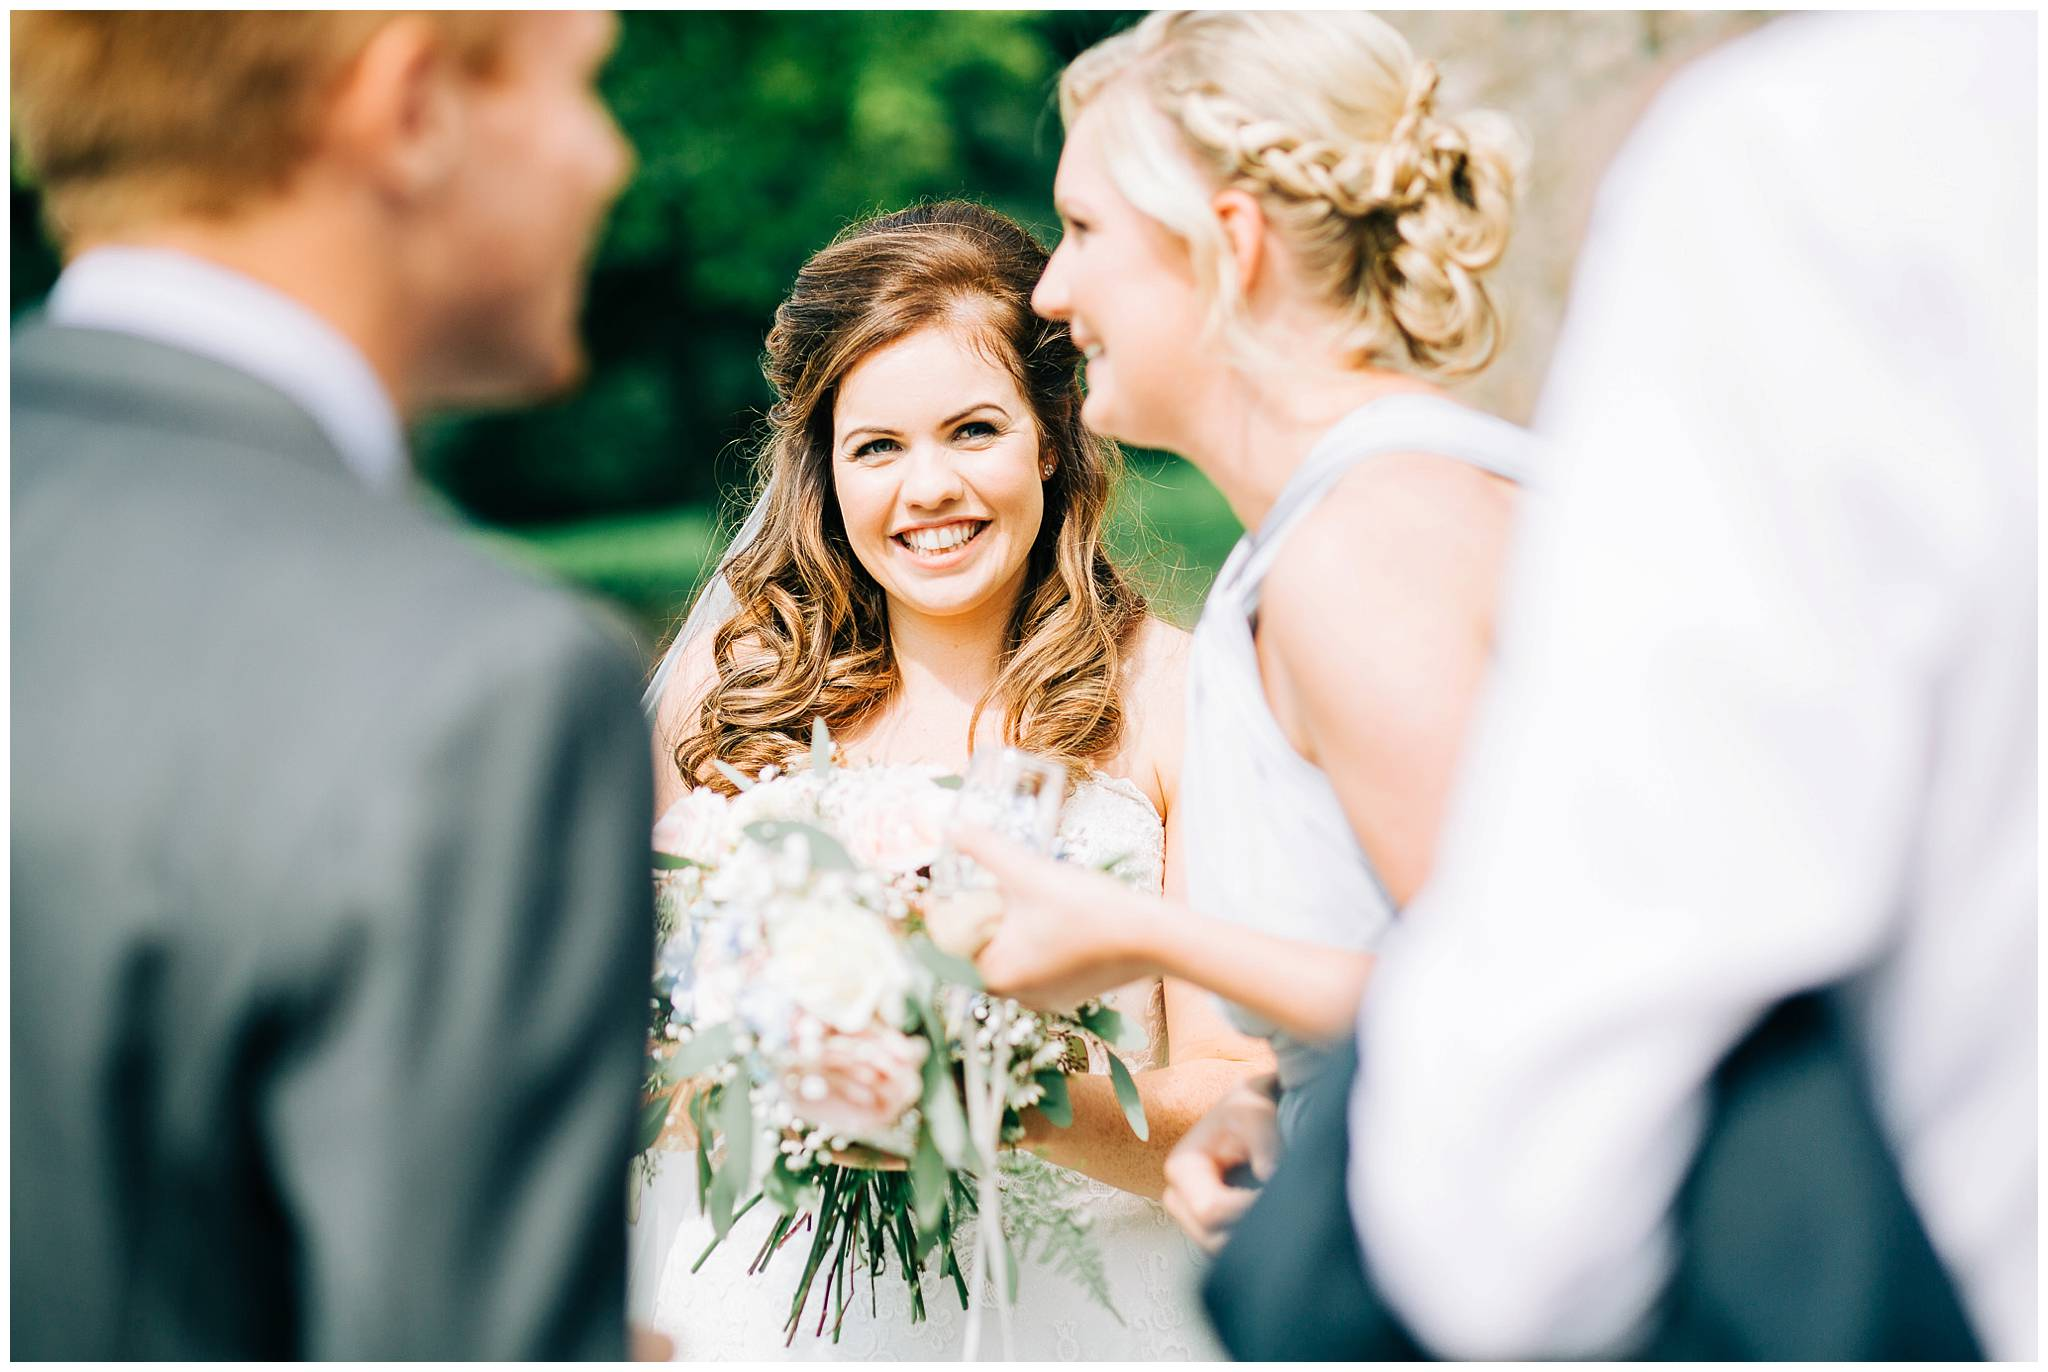 bride smiling and looking at bridesmaid in conversation with another guest